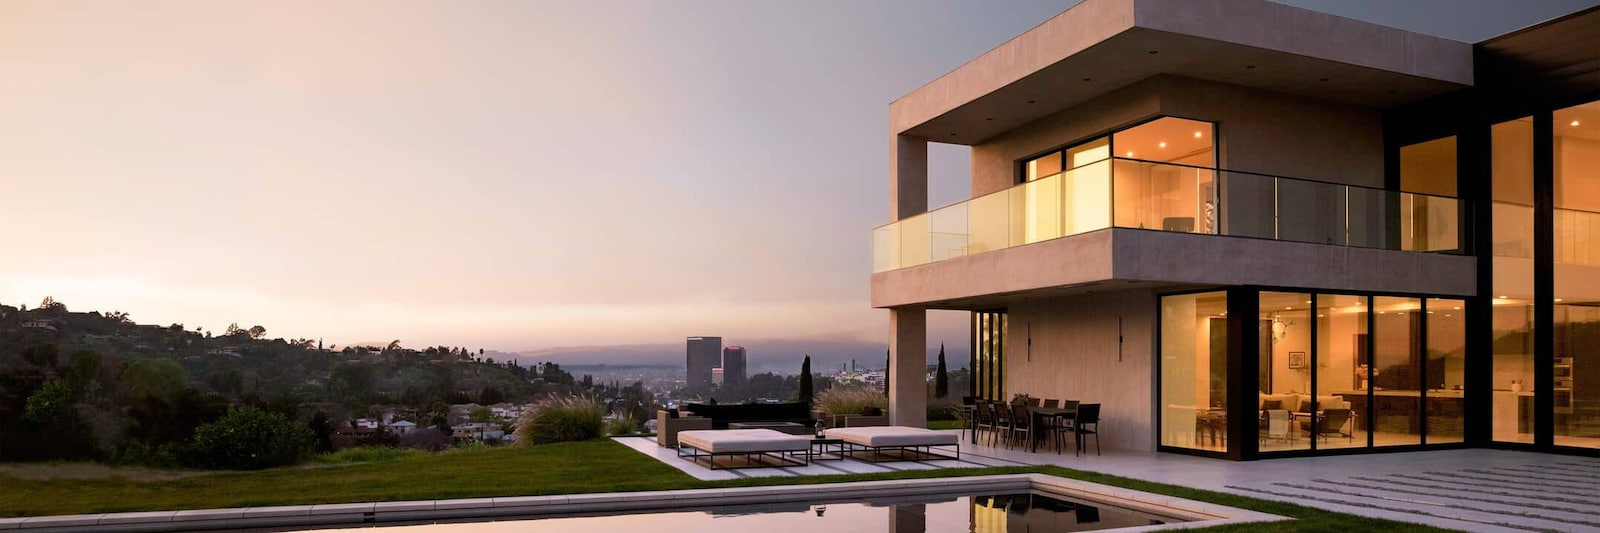 Luxury rentals in Los Angeles